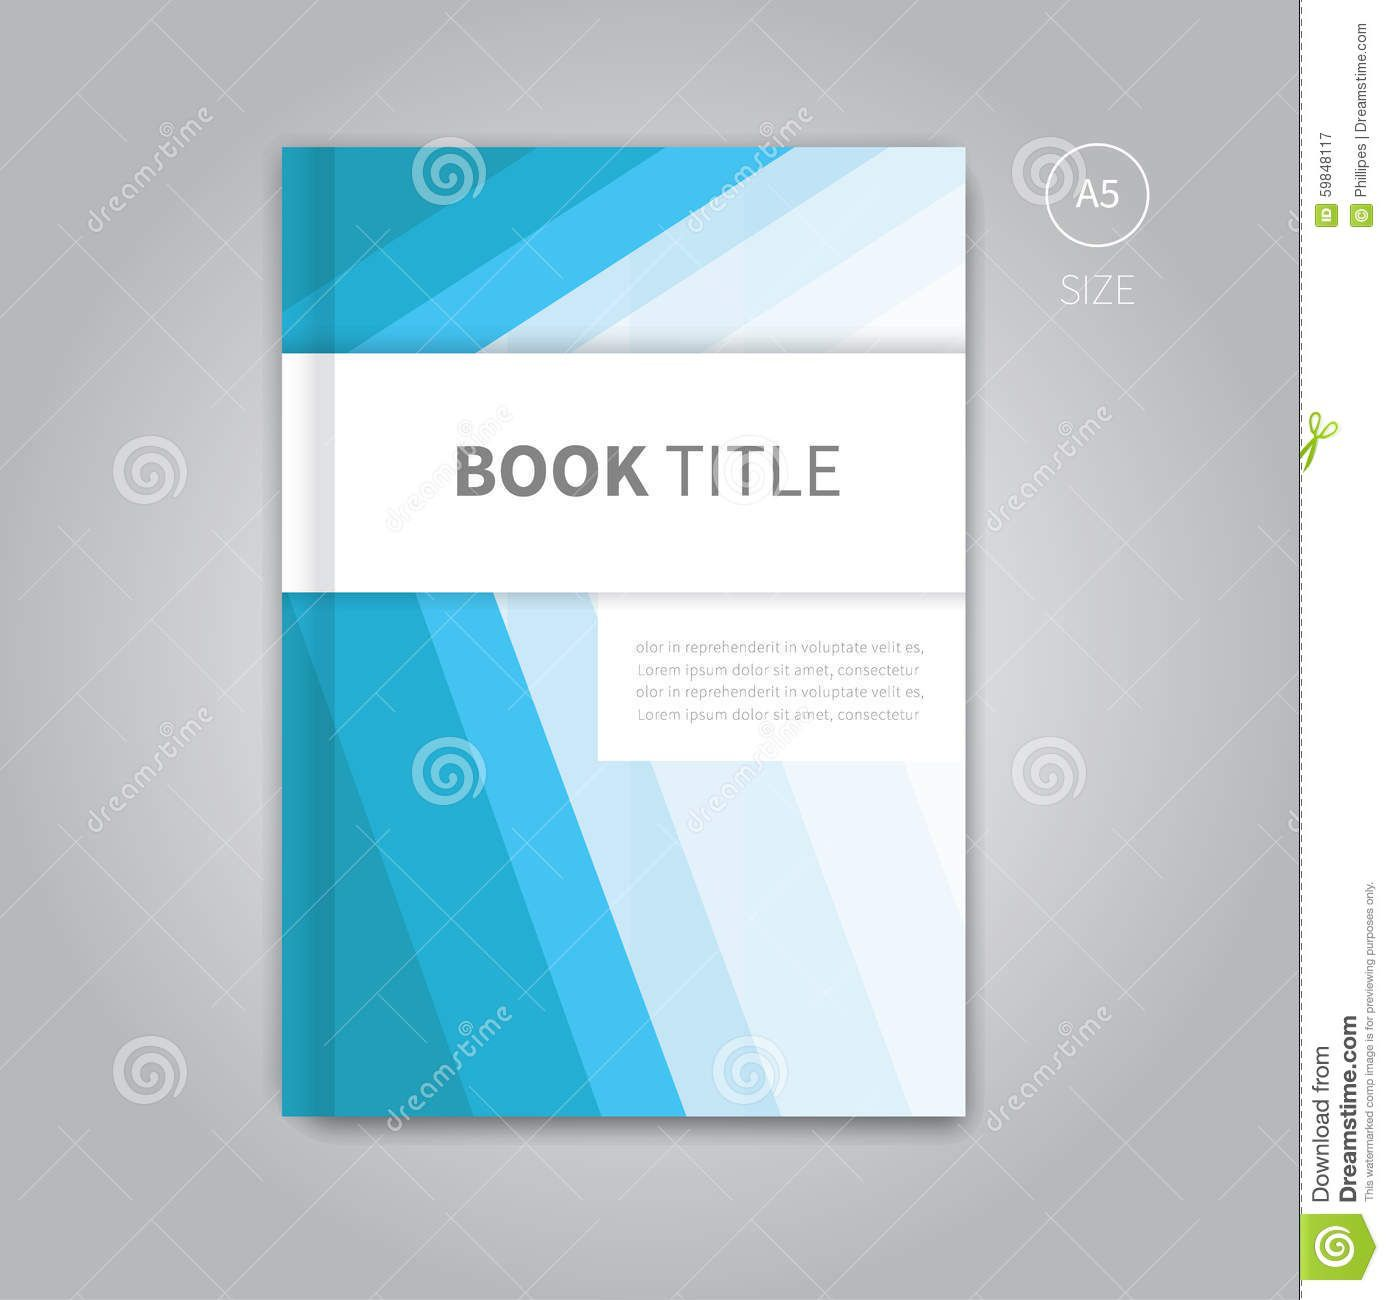 009 Awful Book Front Page Design Template Free Download High Def  Cover PsdFull